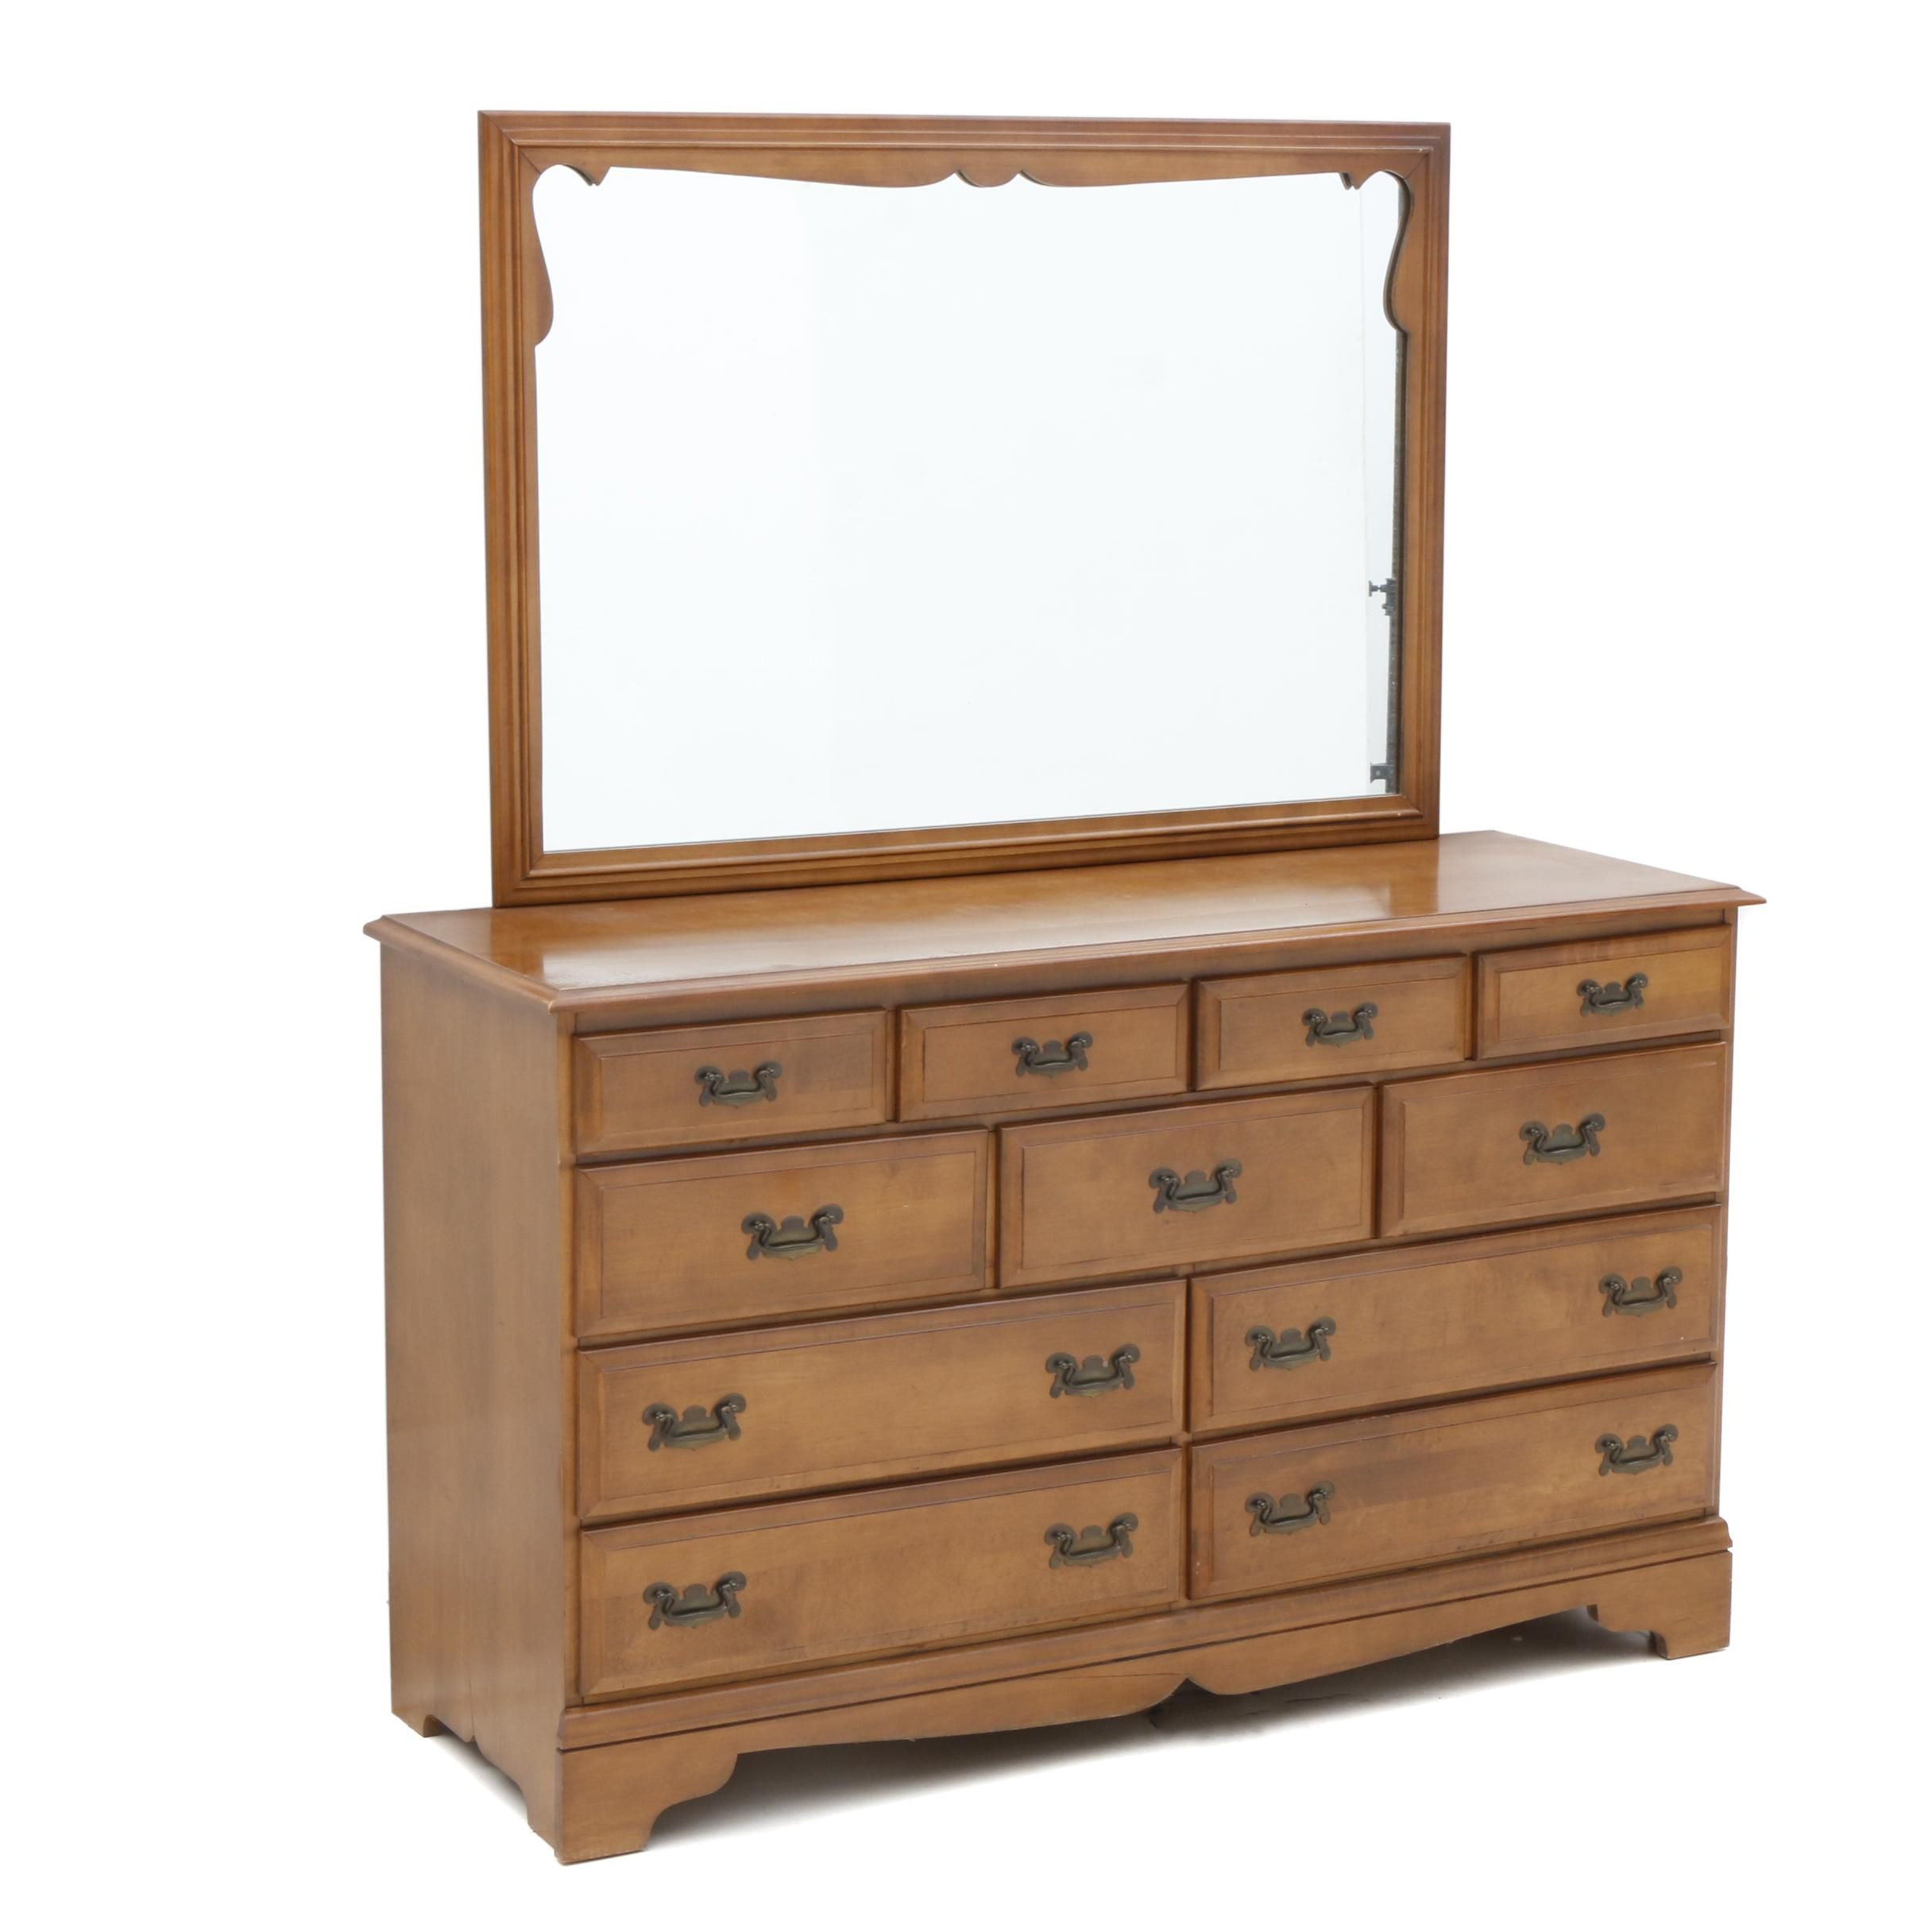 Early American Style Chest of Drawers with Mirror in Walnut